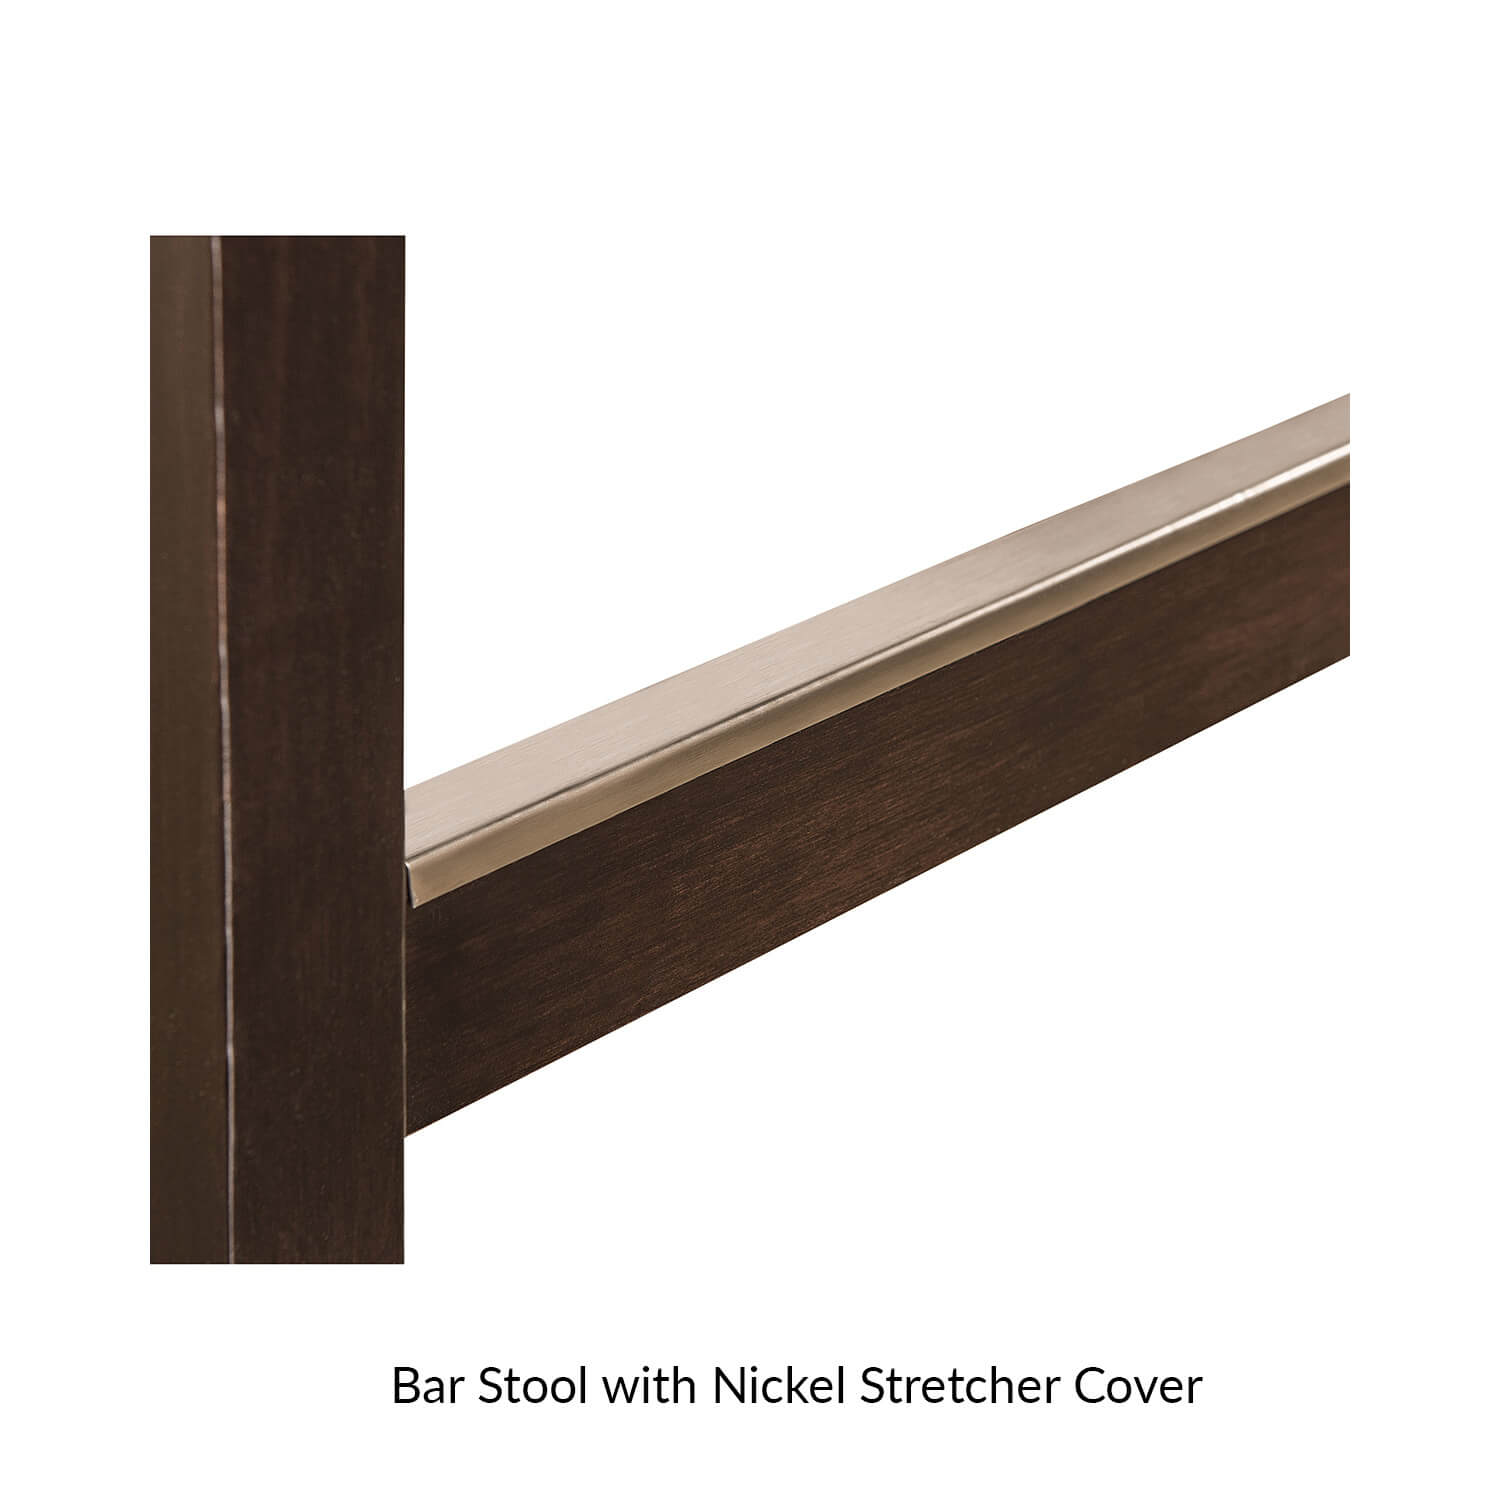 11.-bar-stool-with-nickel-stretcher-cover.jpg